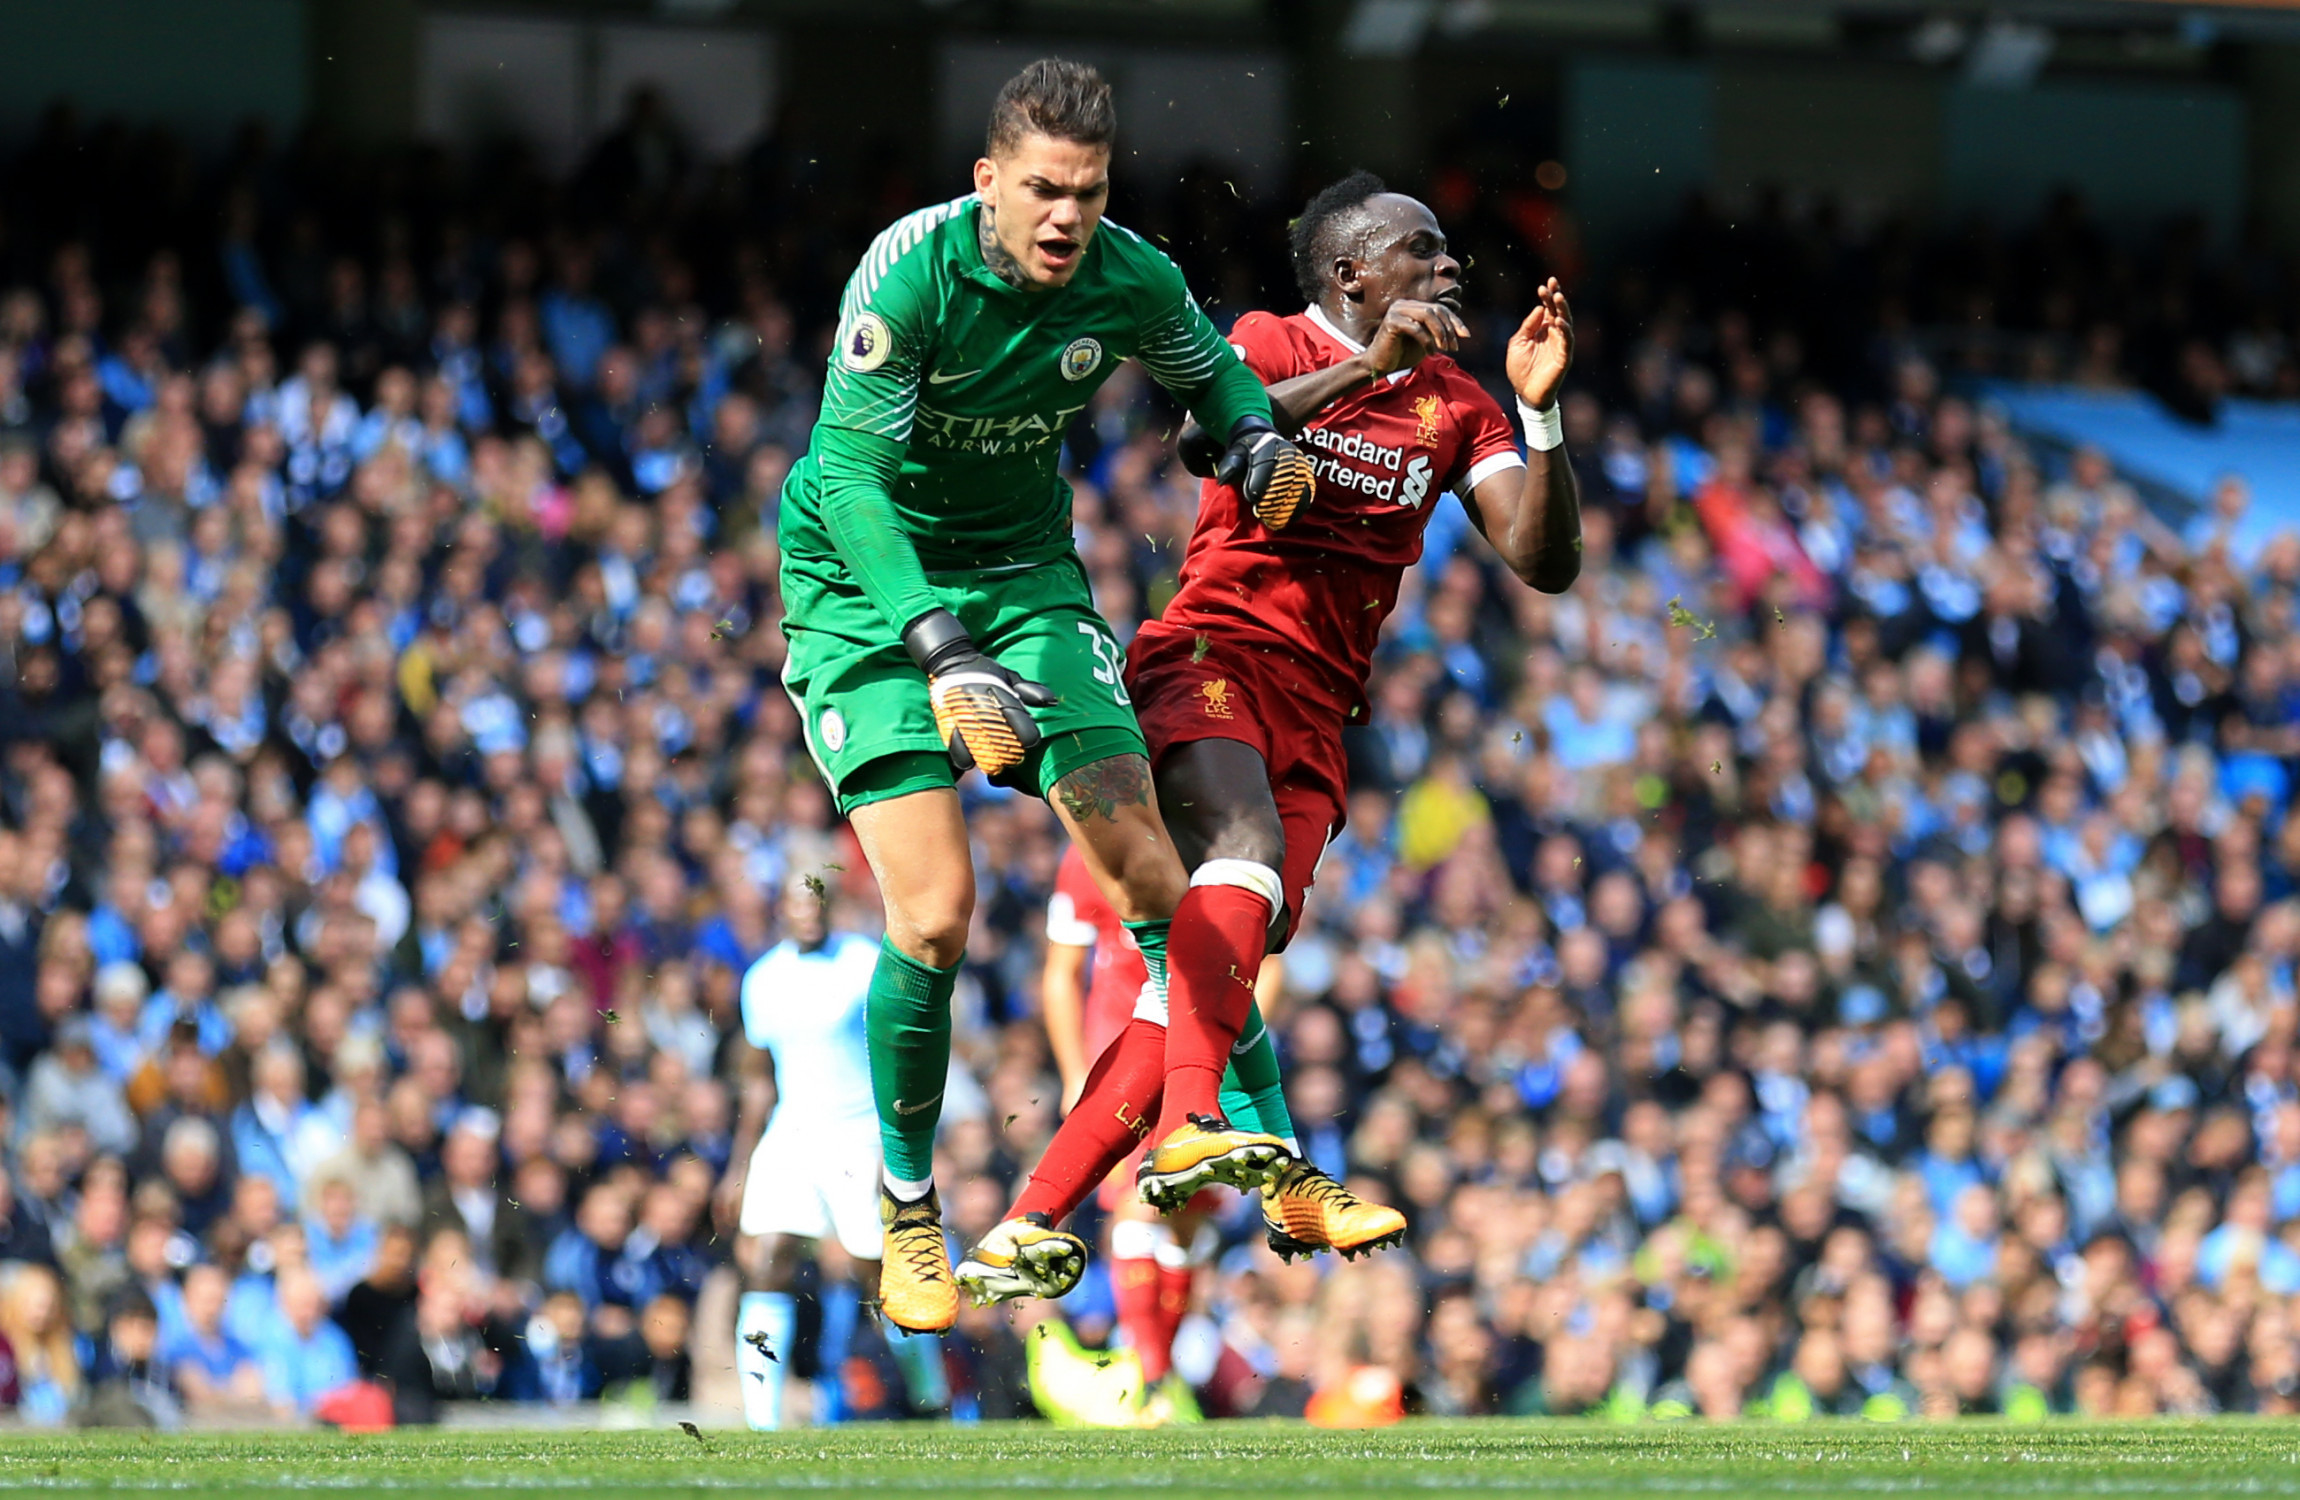 Man City keeper Bravo raps Mane: You could've avoided Ederson